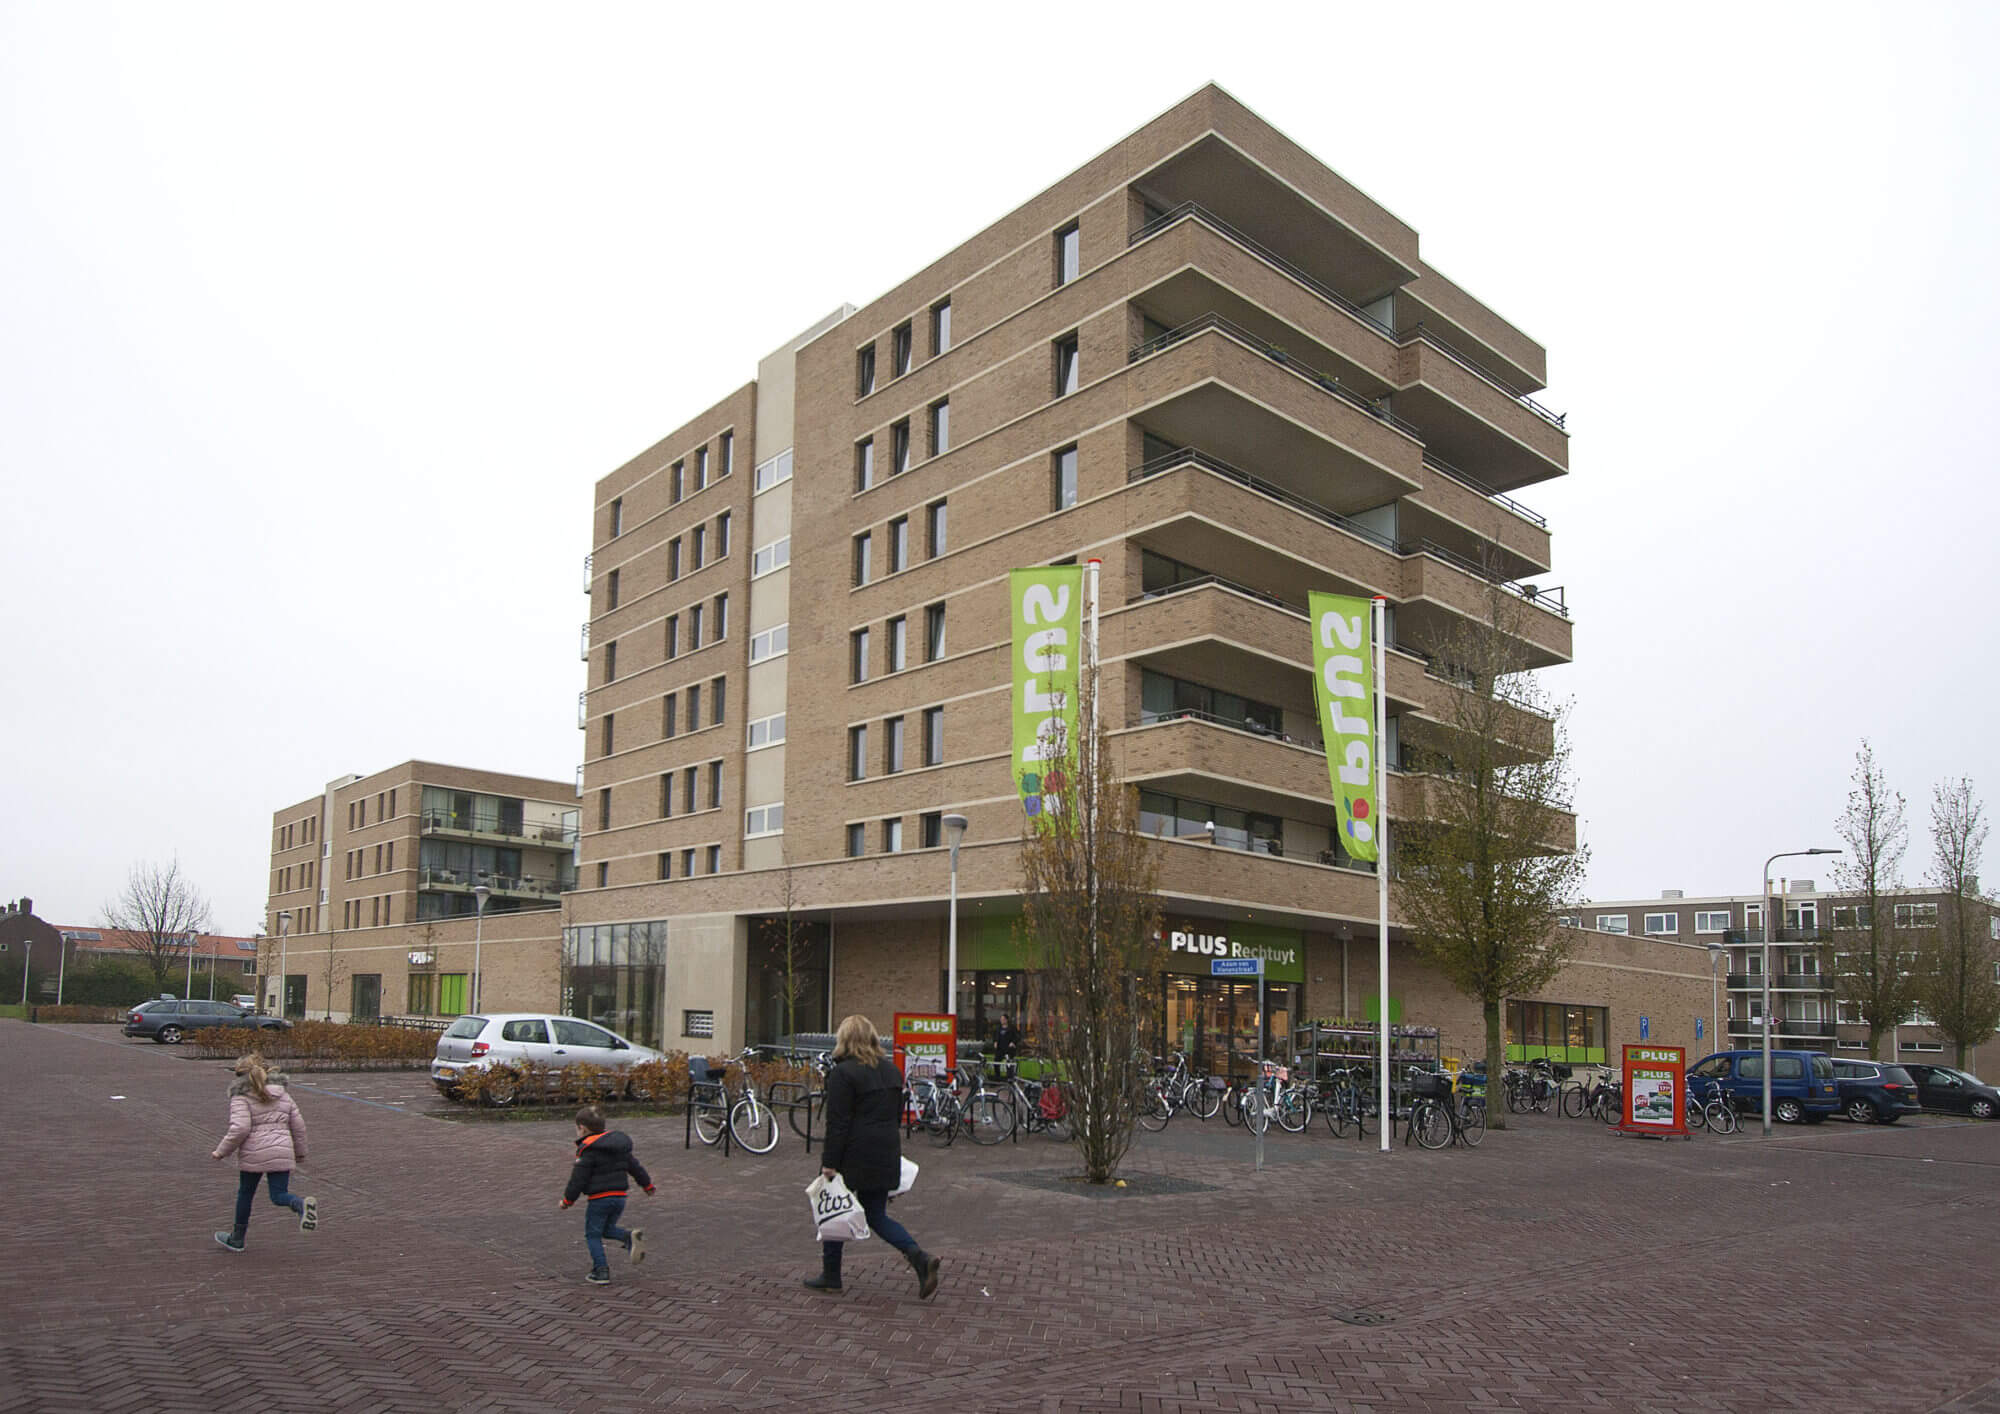 Blok 9: 36 appartementen en Plus supermarkt